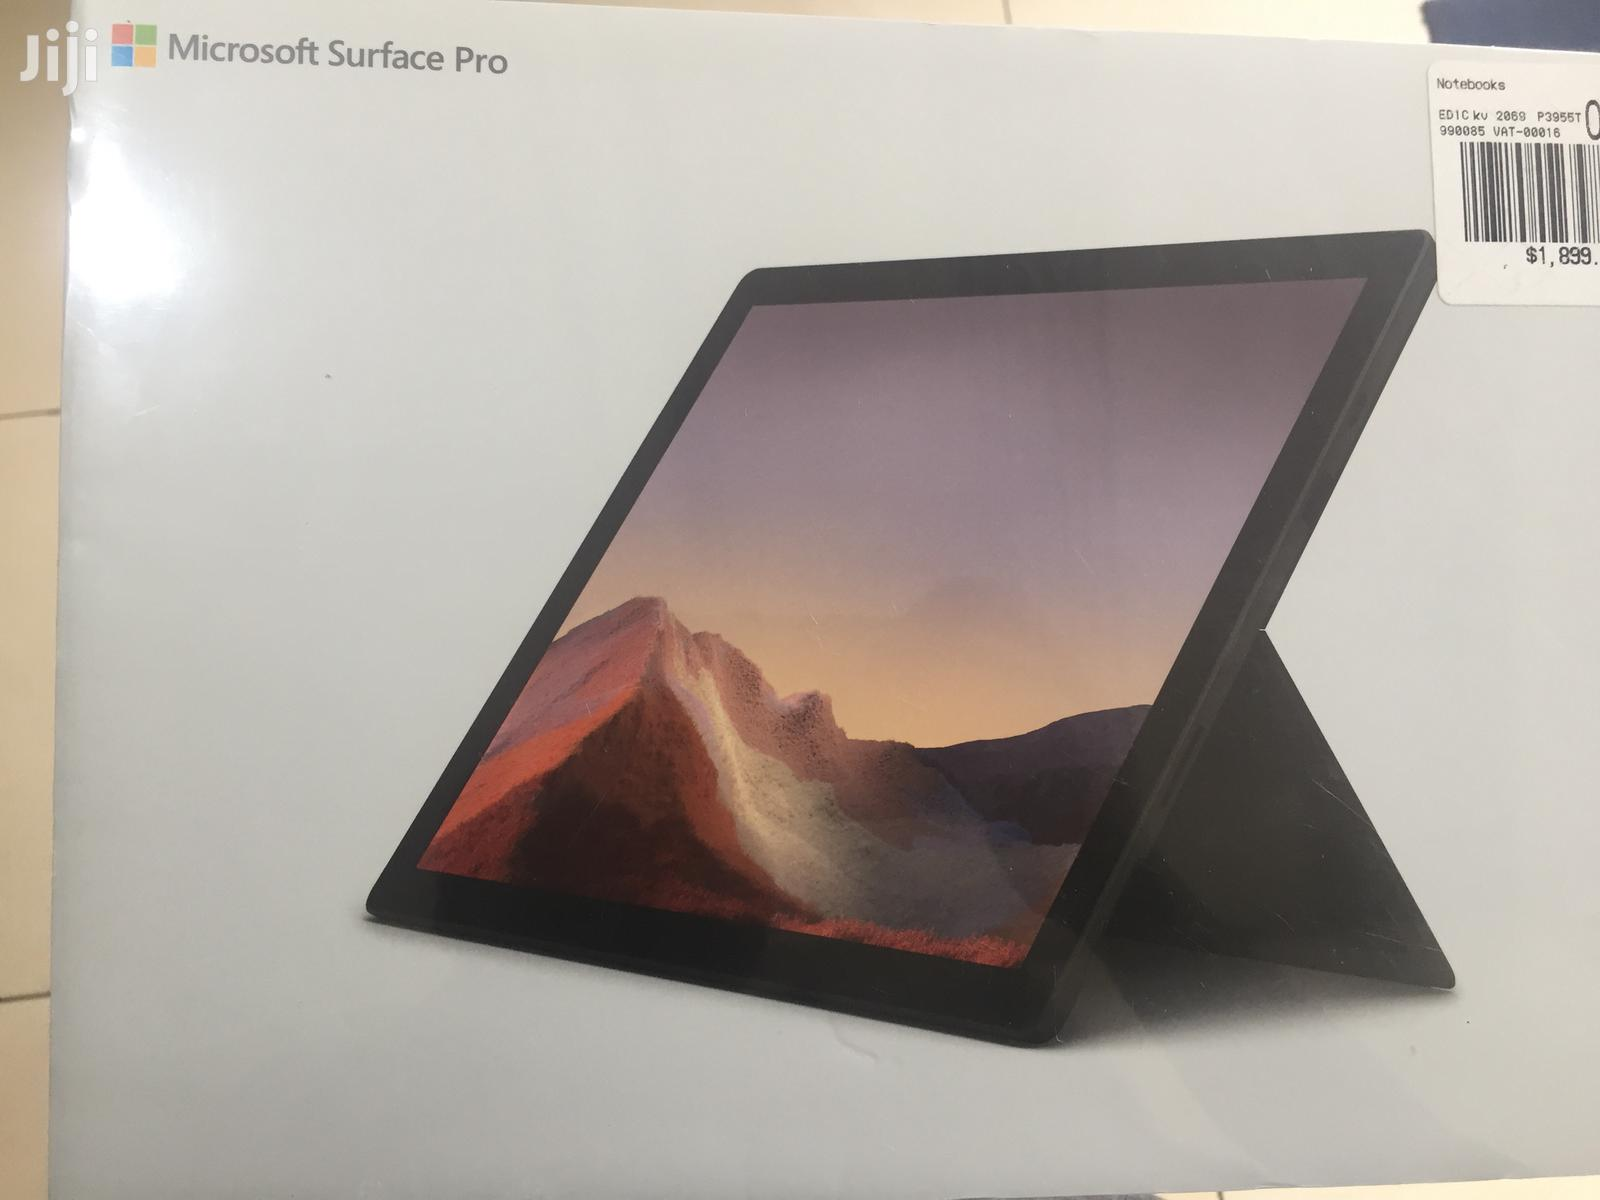 New Microsoft Surface Pro 512 GB Black | Tablets for sale in Kokomlemle, Greater Accra, Ghana